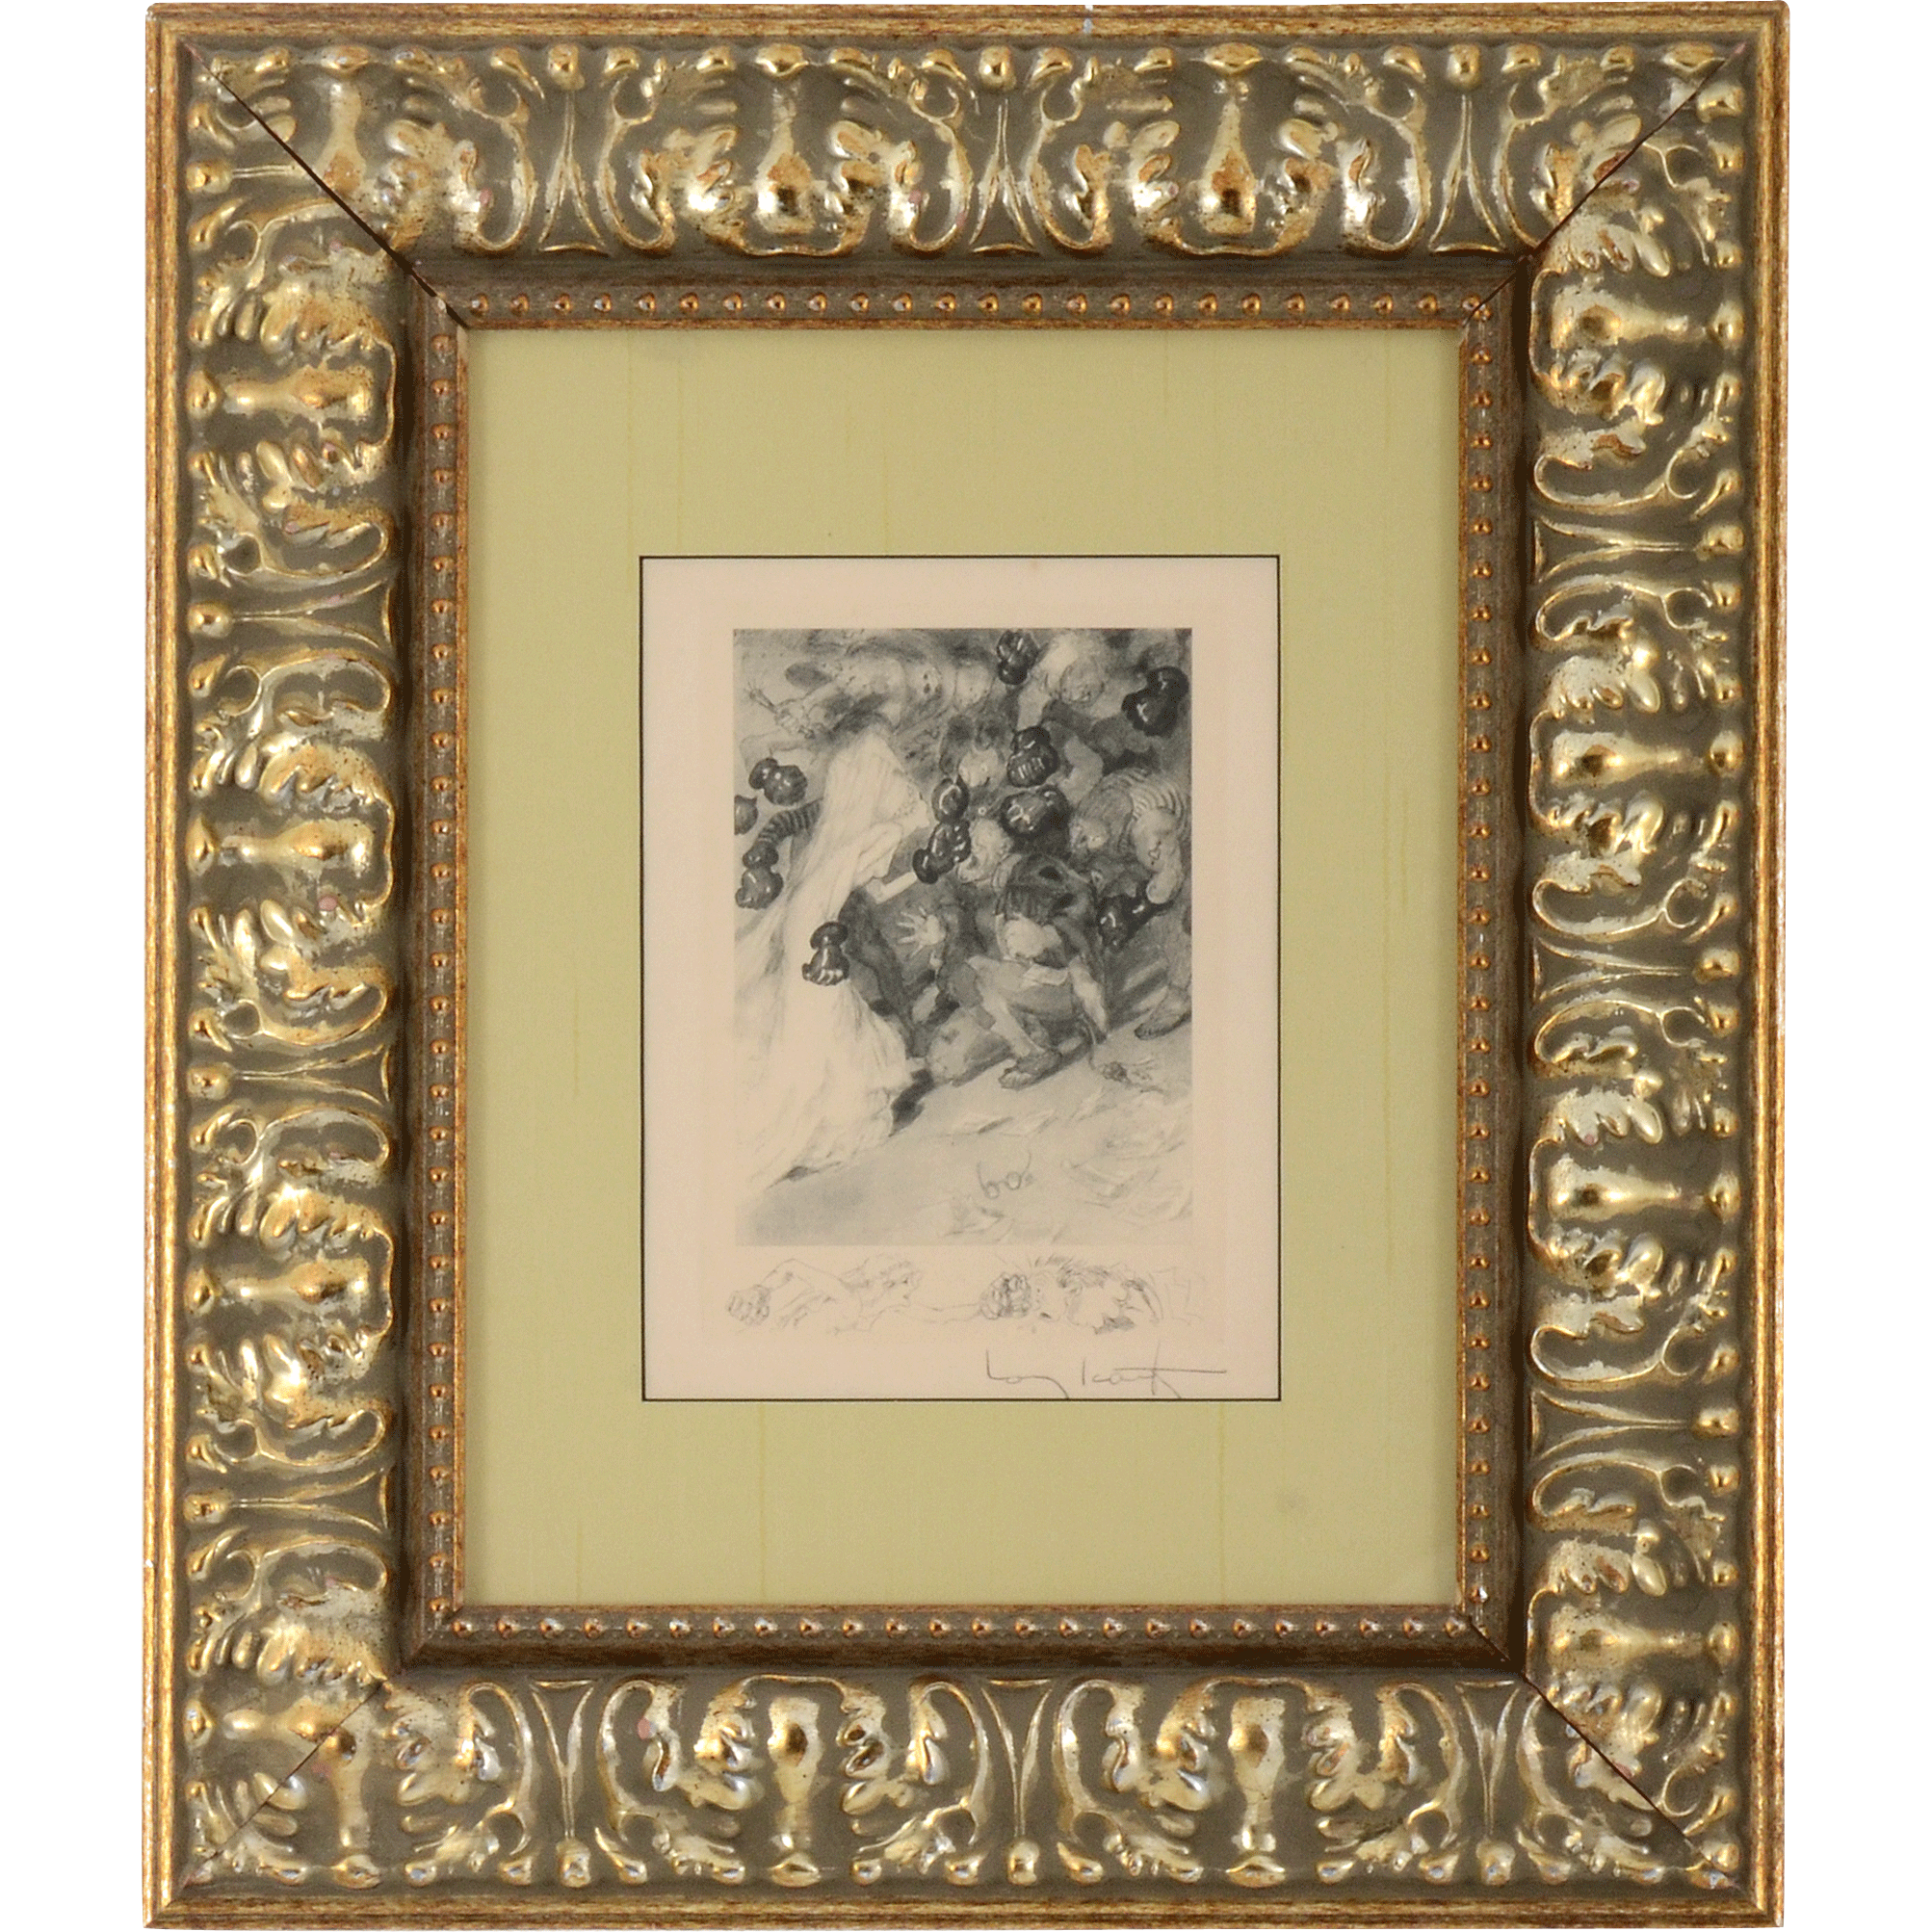 Etching in Gilded Frame by Louis Icart